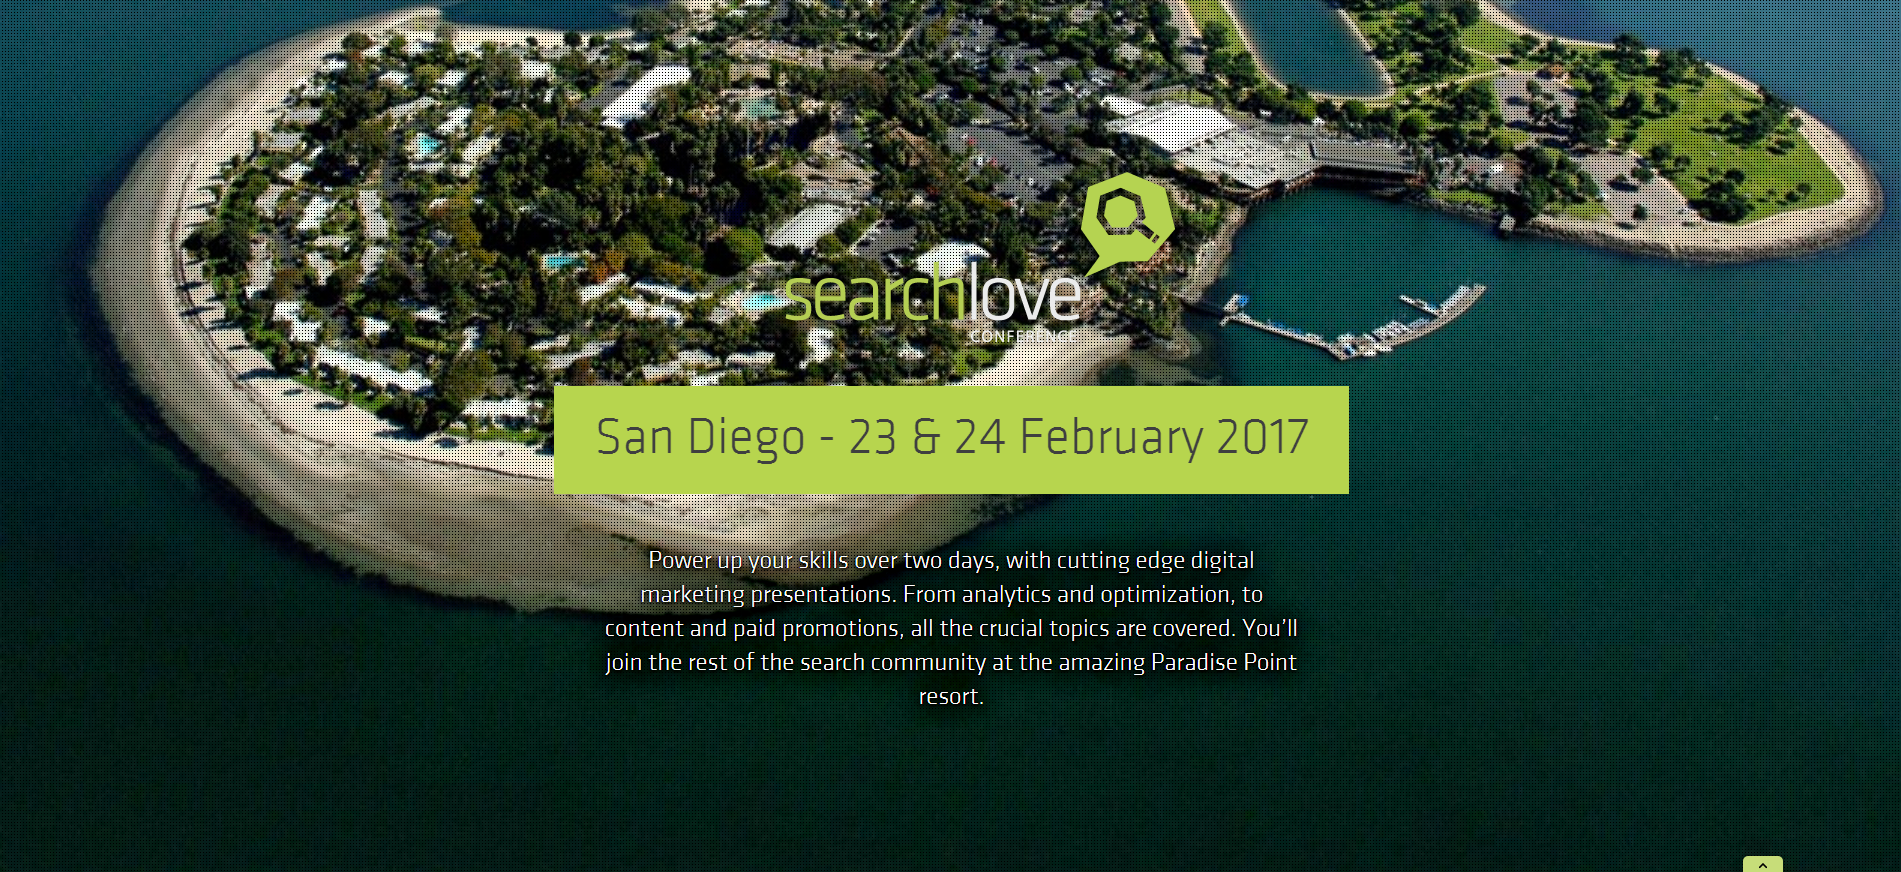 SearchLove® Conference - San Diego